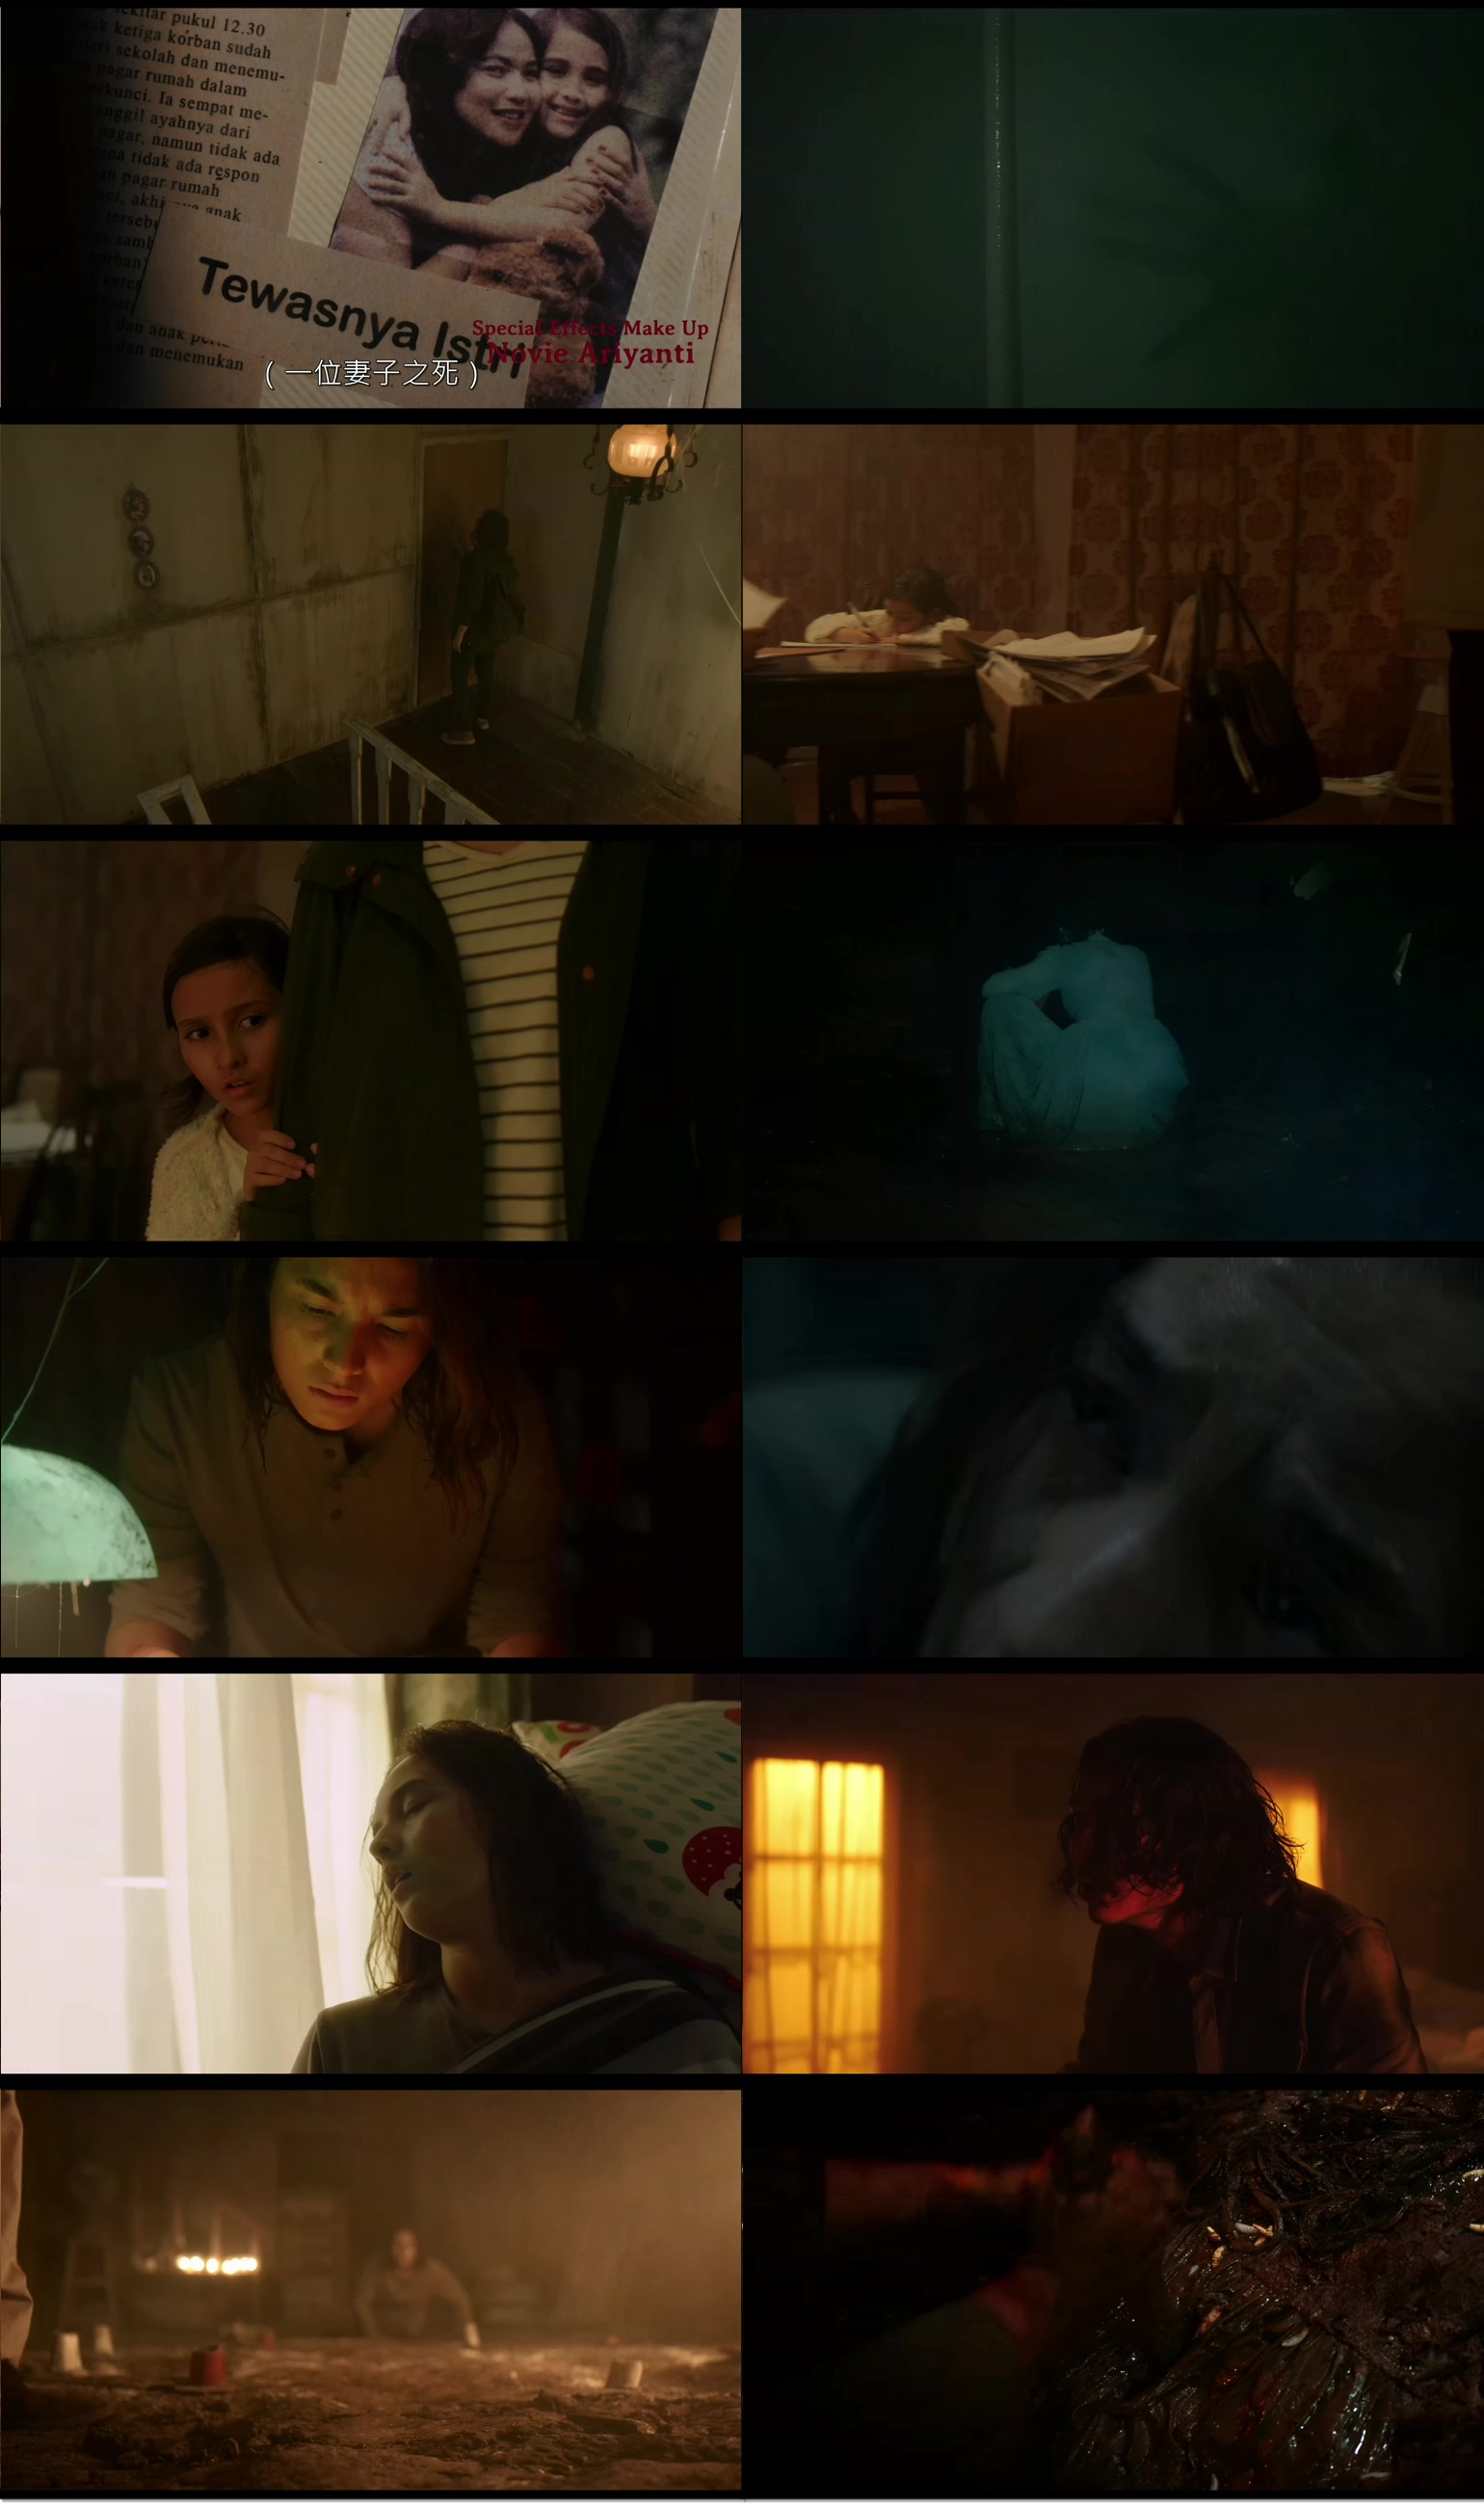 May.The.Devil.Take.You.2018.INDONESIAN.1080p.NF.WEBRip.DD5.1.x264-TOMMY.mkv